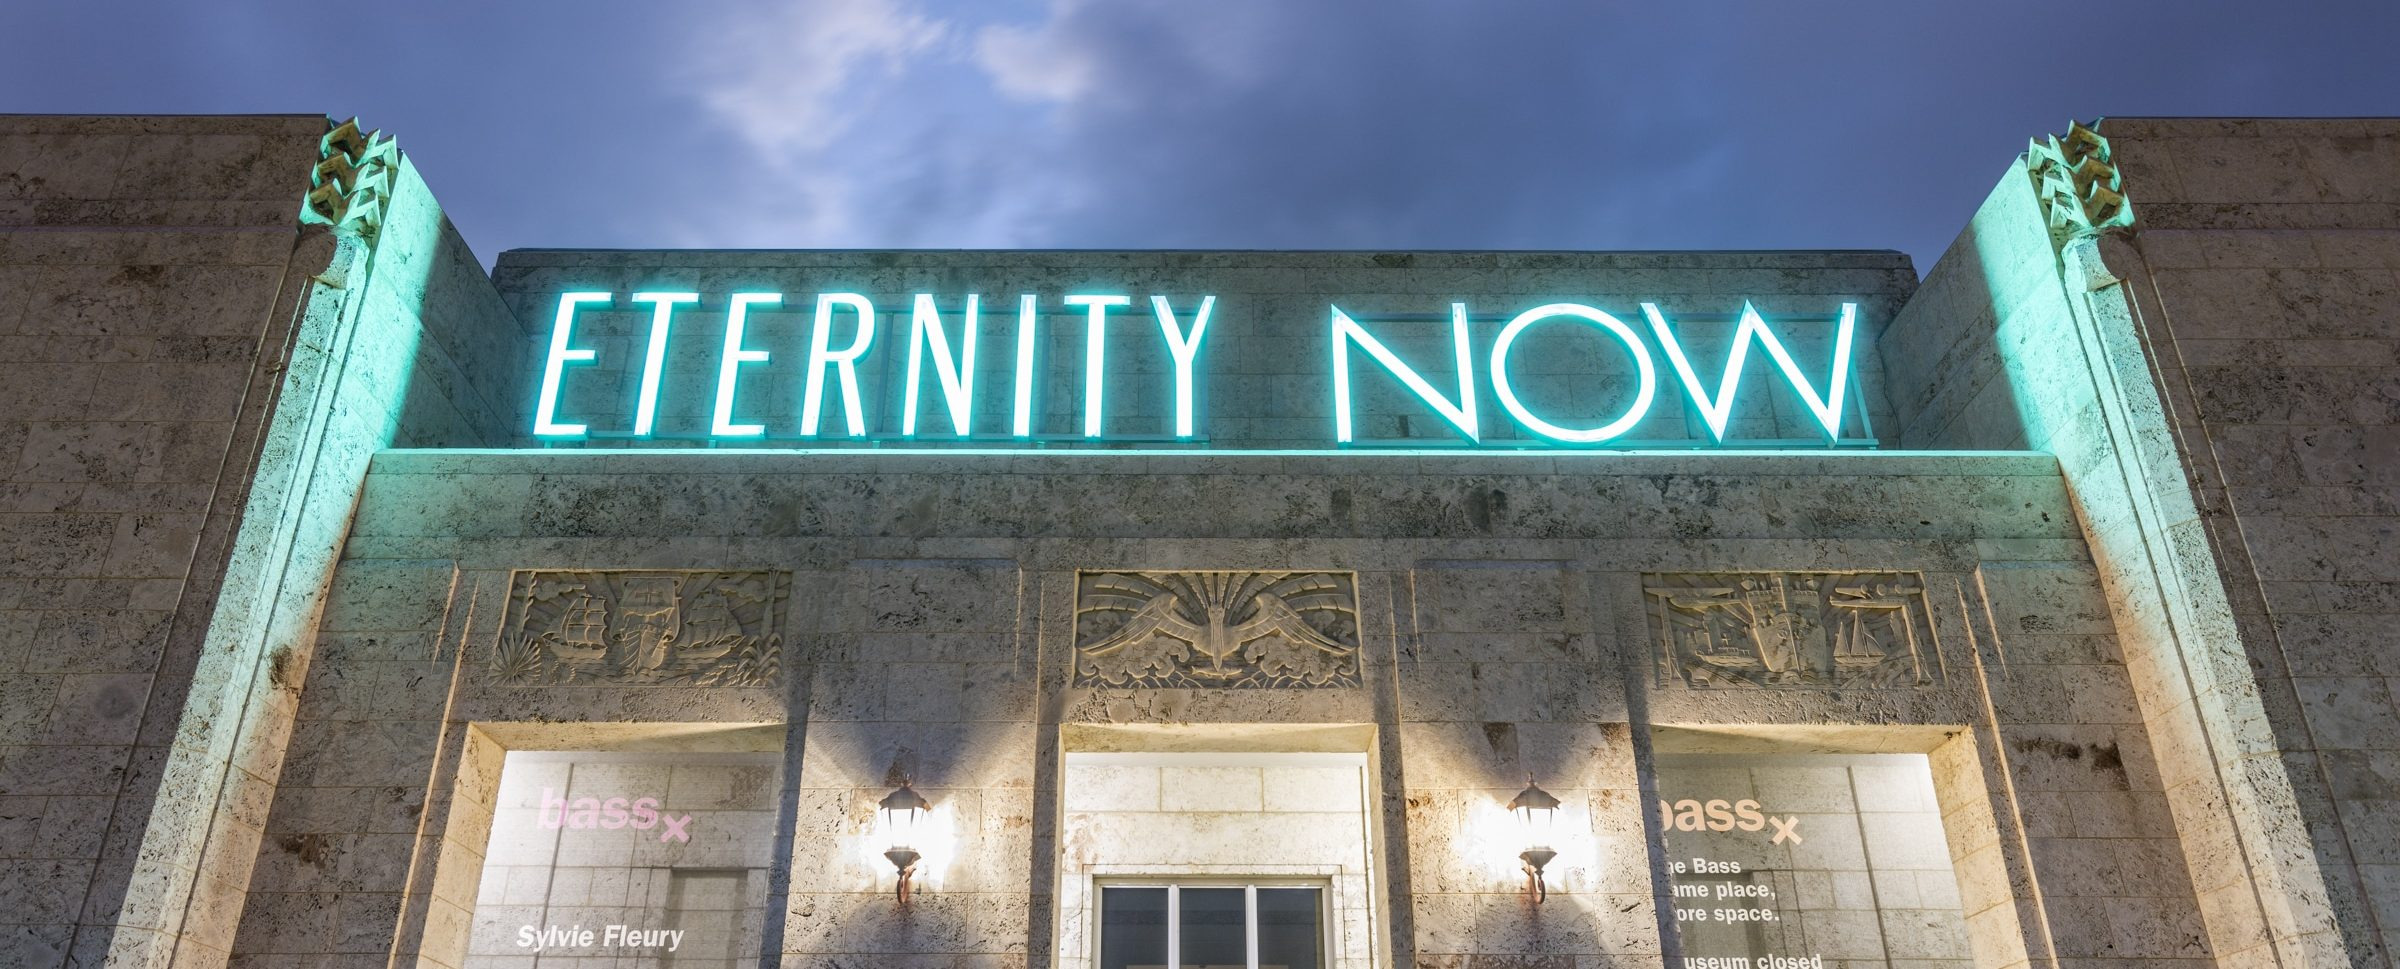 ETERNITY NOW, 2015 by Sylvie Fleury